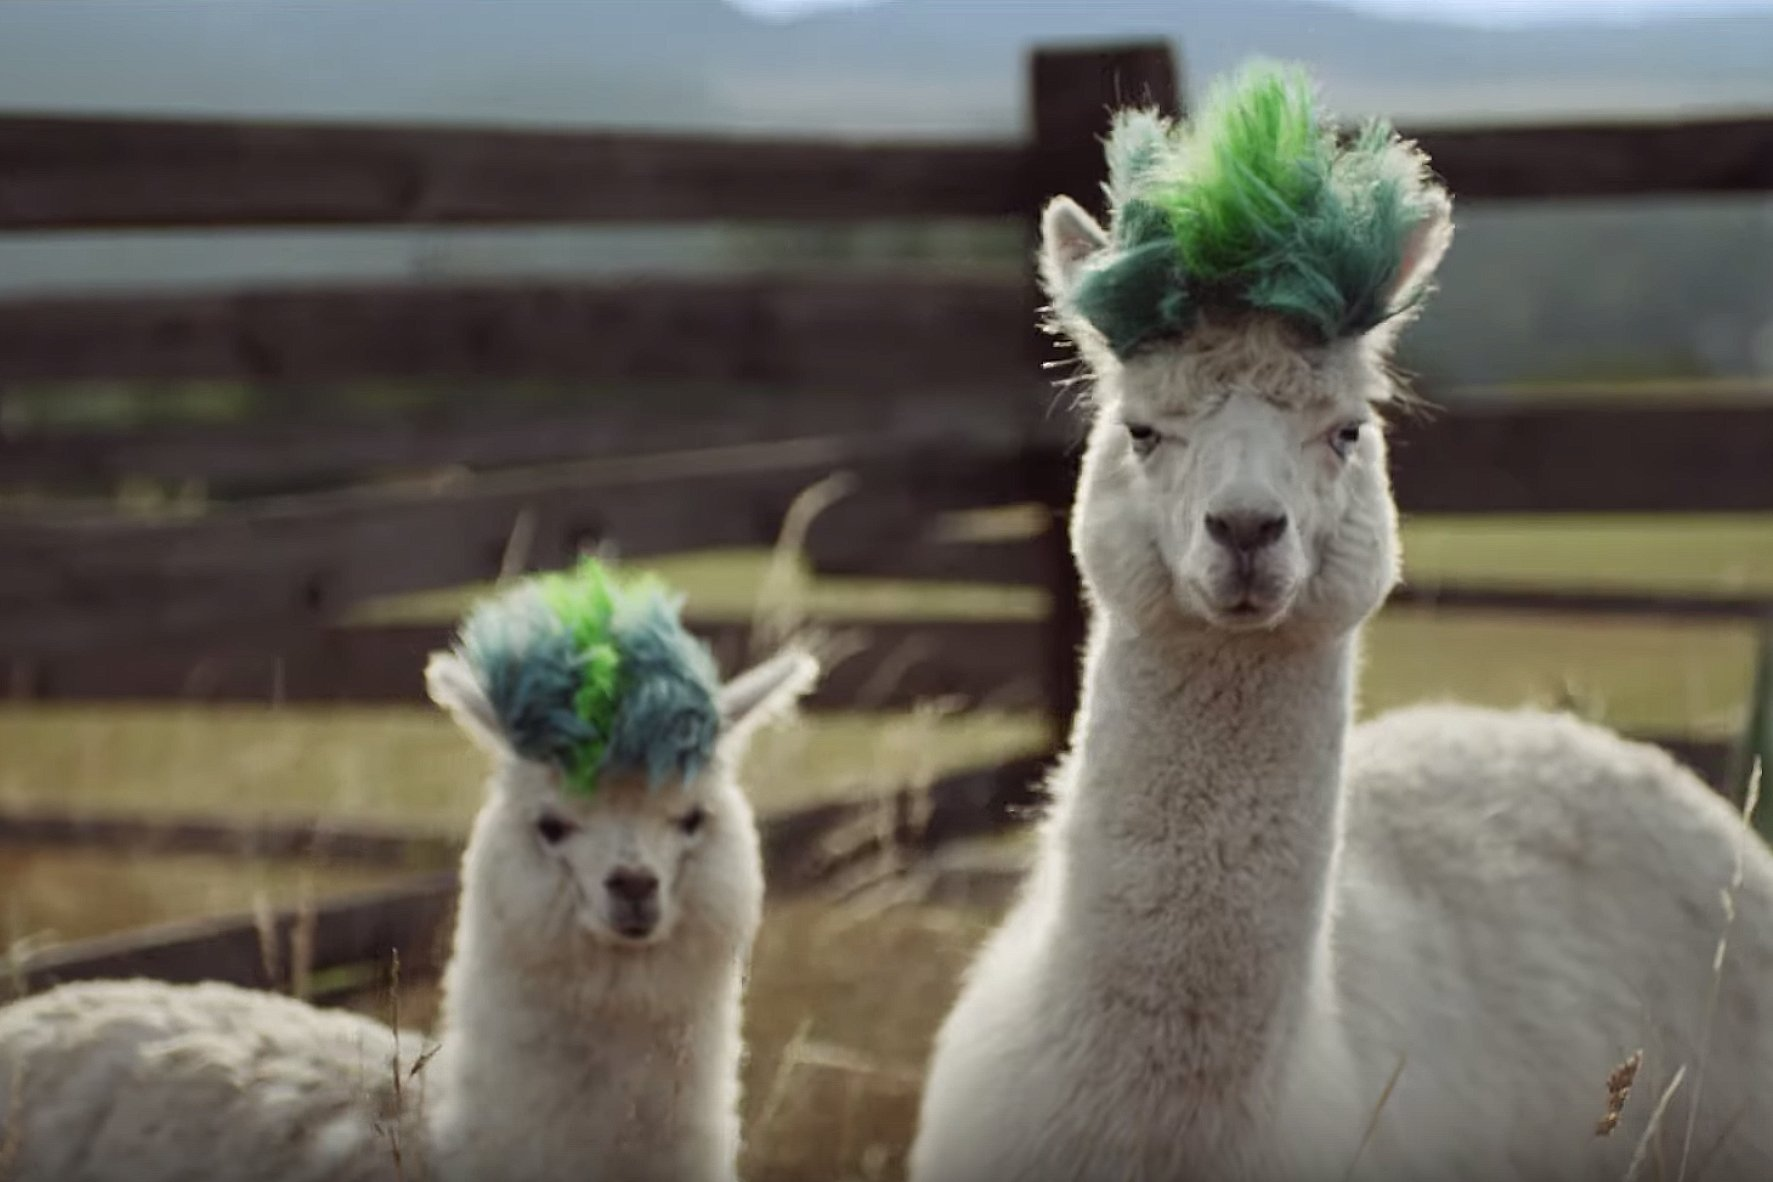 Watch the newest commercials on TV from Samsung, Campbell's, Pizza Hut and more